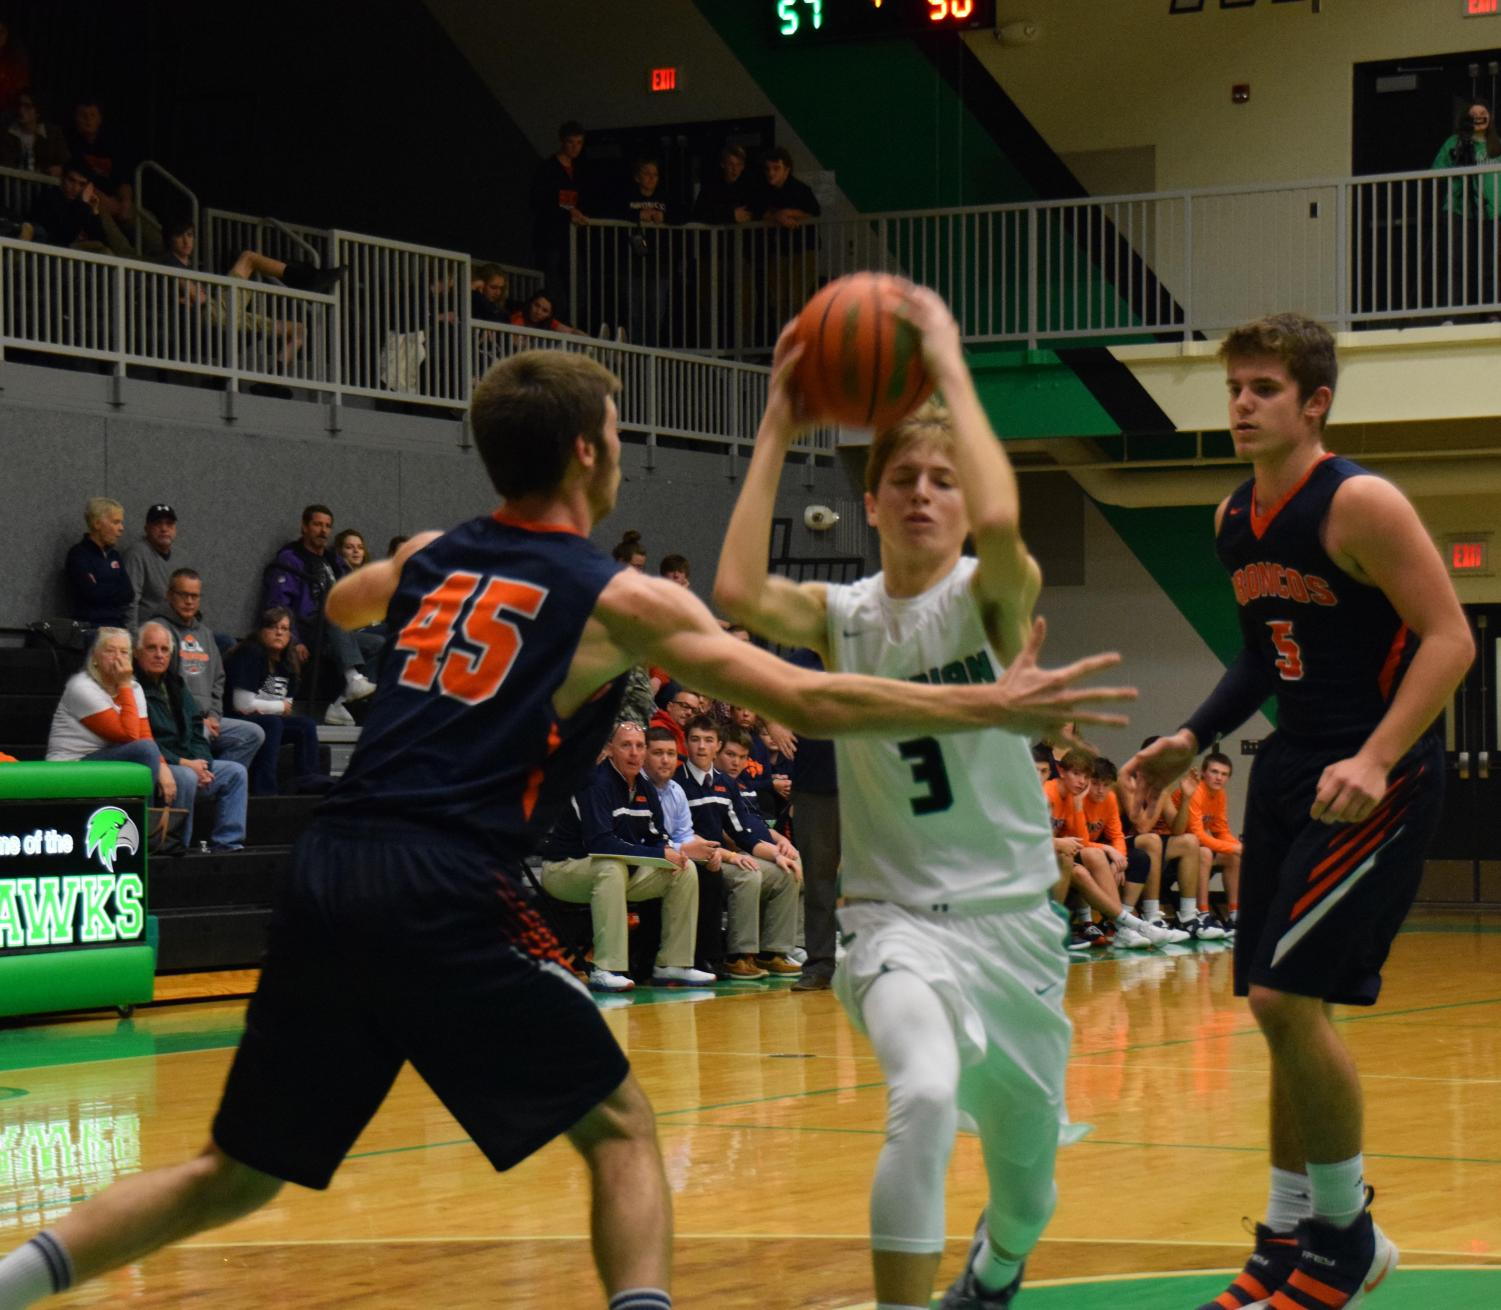 ALL THE WAY! Garrett Meisenhelter takes it to the hole for the Hawks against the Broncos in the varsity game on Tuesday, December 11. The Hawks went on to narrowly beat Cerro Gordo 66-61.